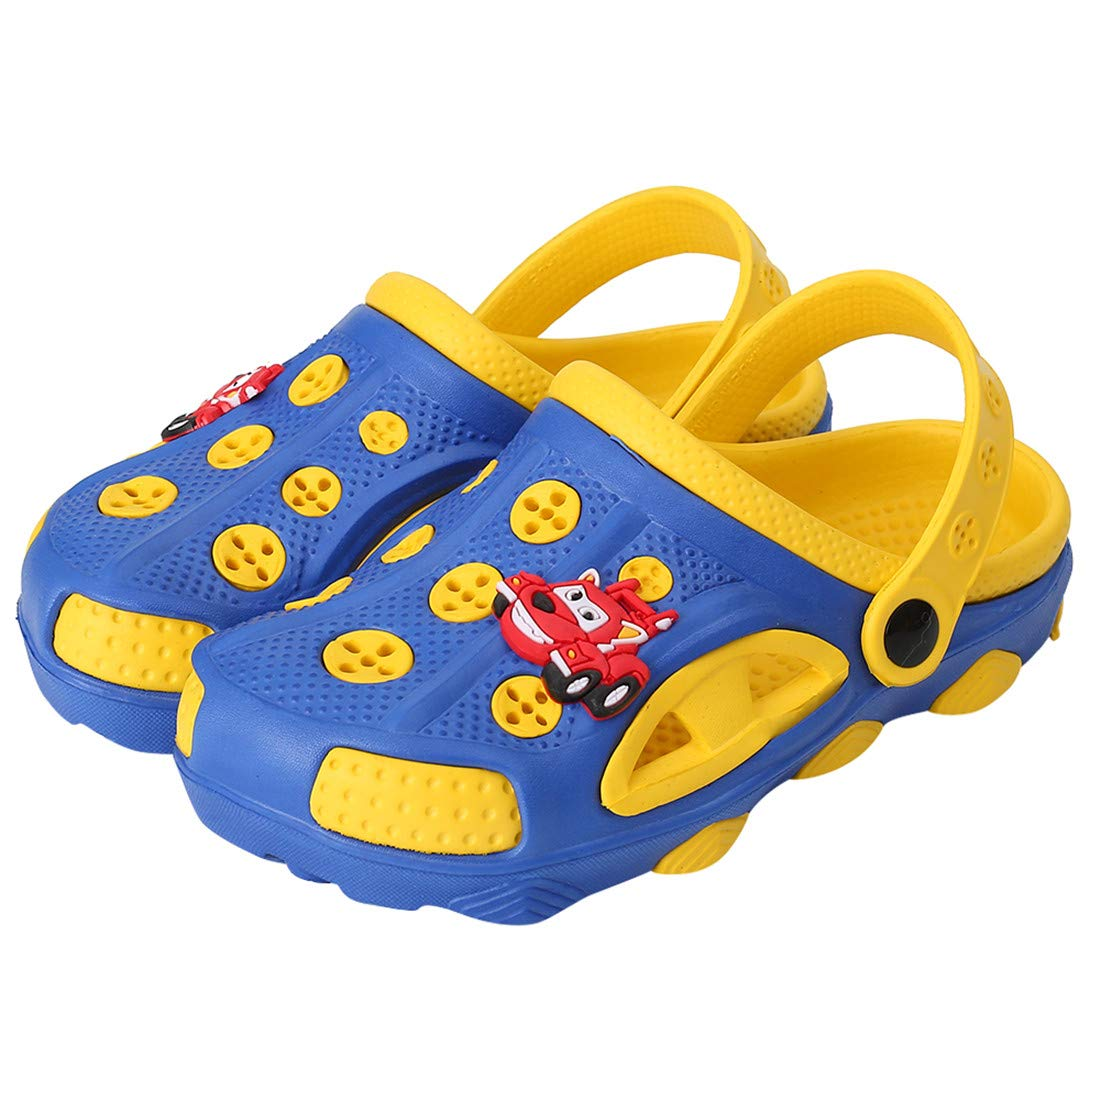 Fashion-zone Toddlers Cartoon Slides Sandals-Lightweight Garden Clogs Beach Sandals for Toddler Boys Girls (7 M US Toddler, Blue)